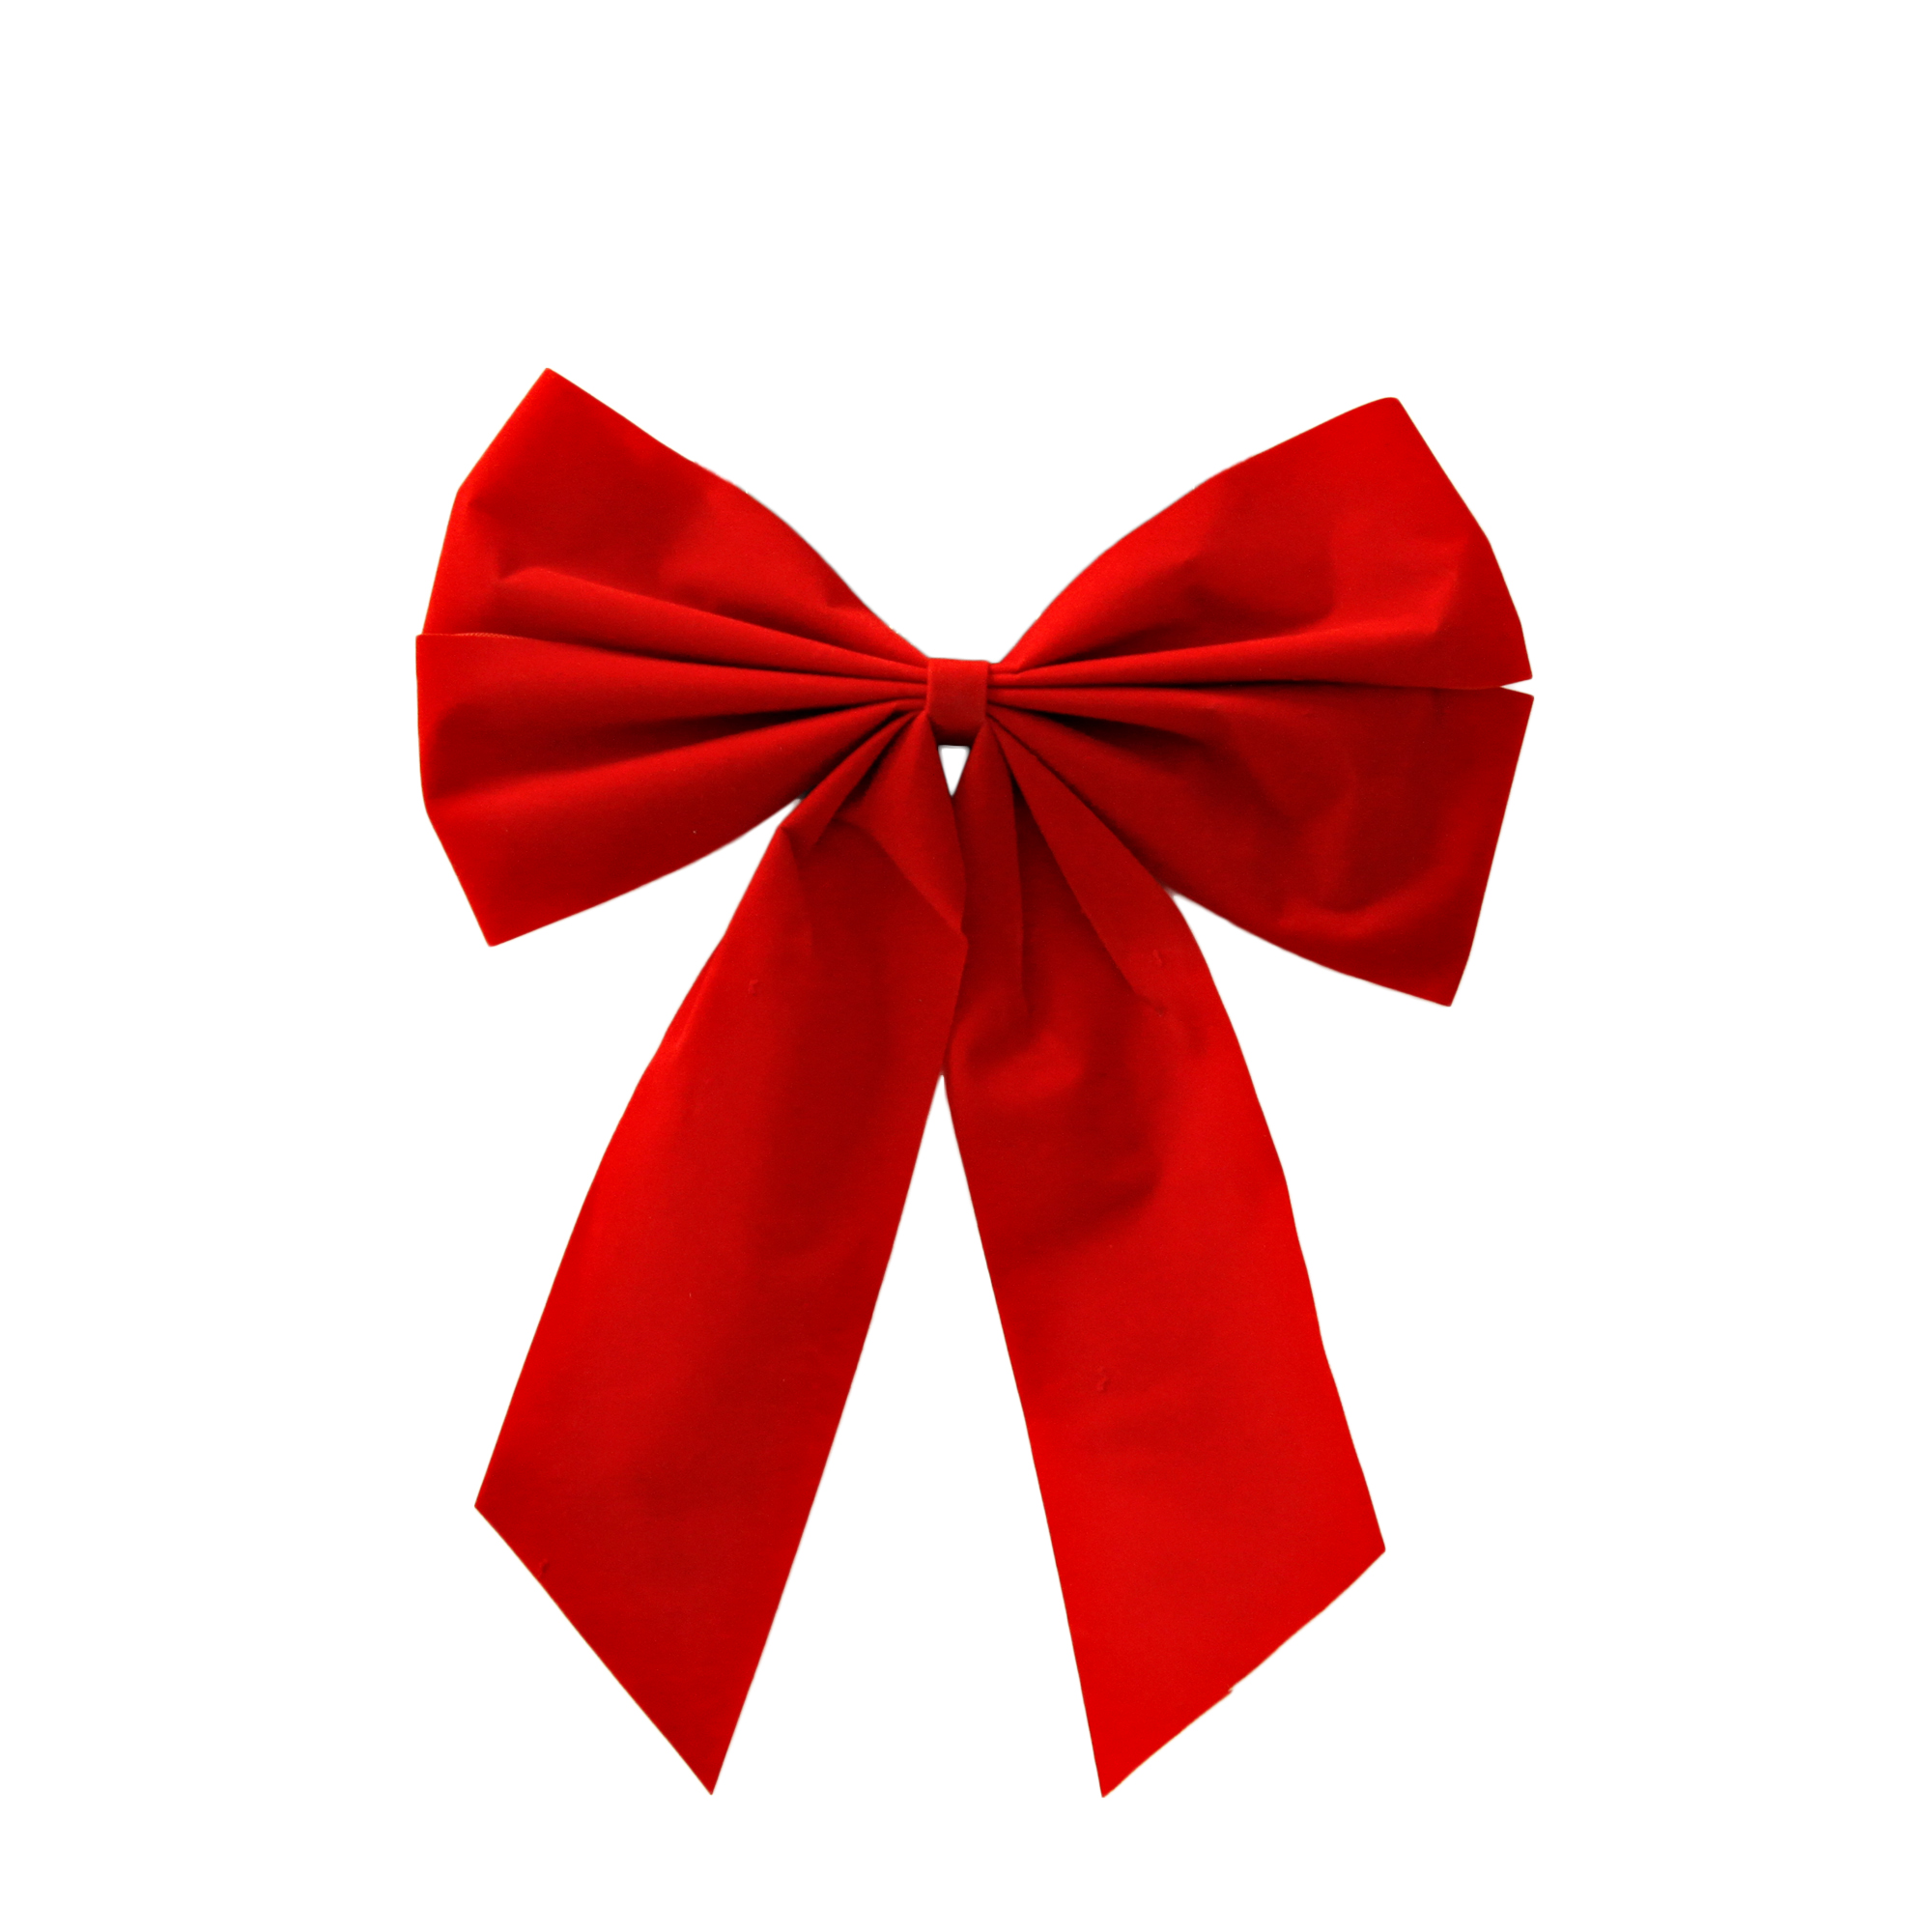 Trim A Home® 11x16 Red Basic Bow